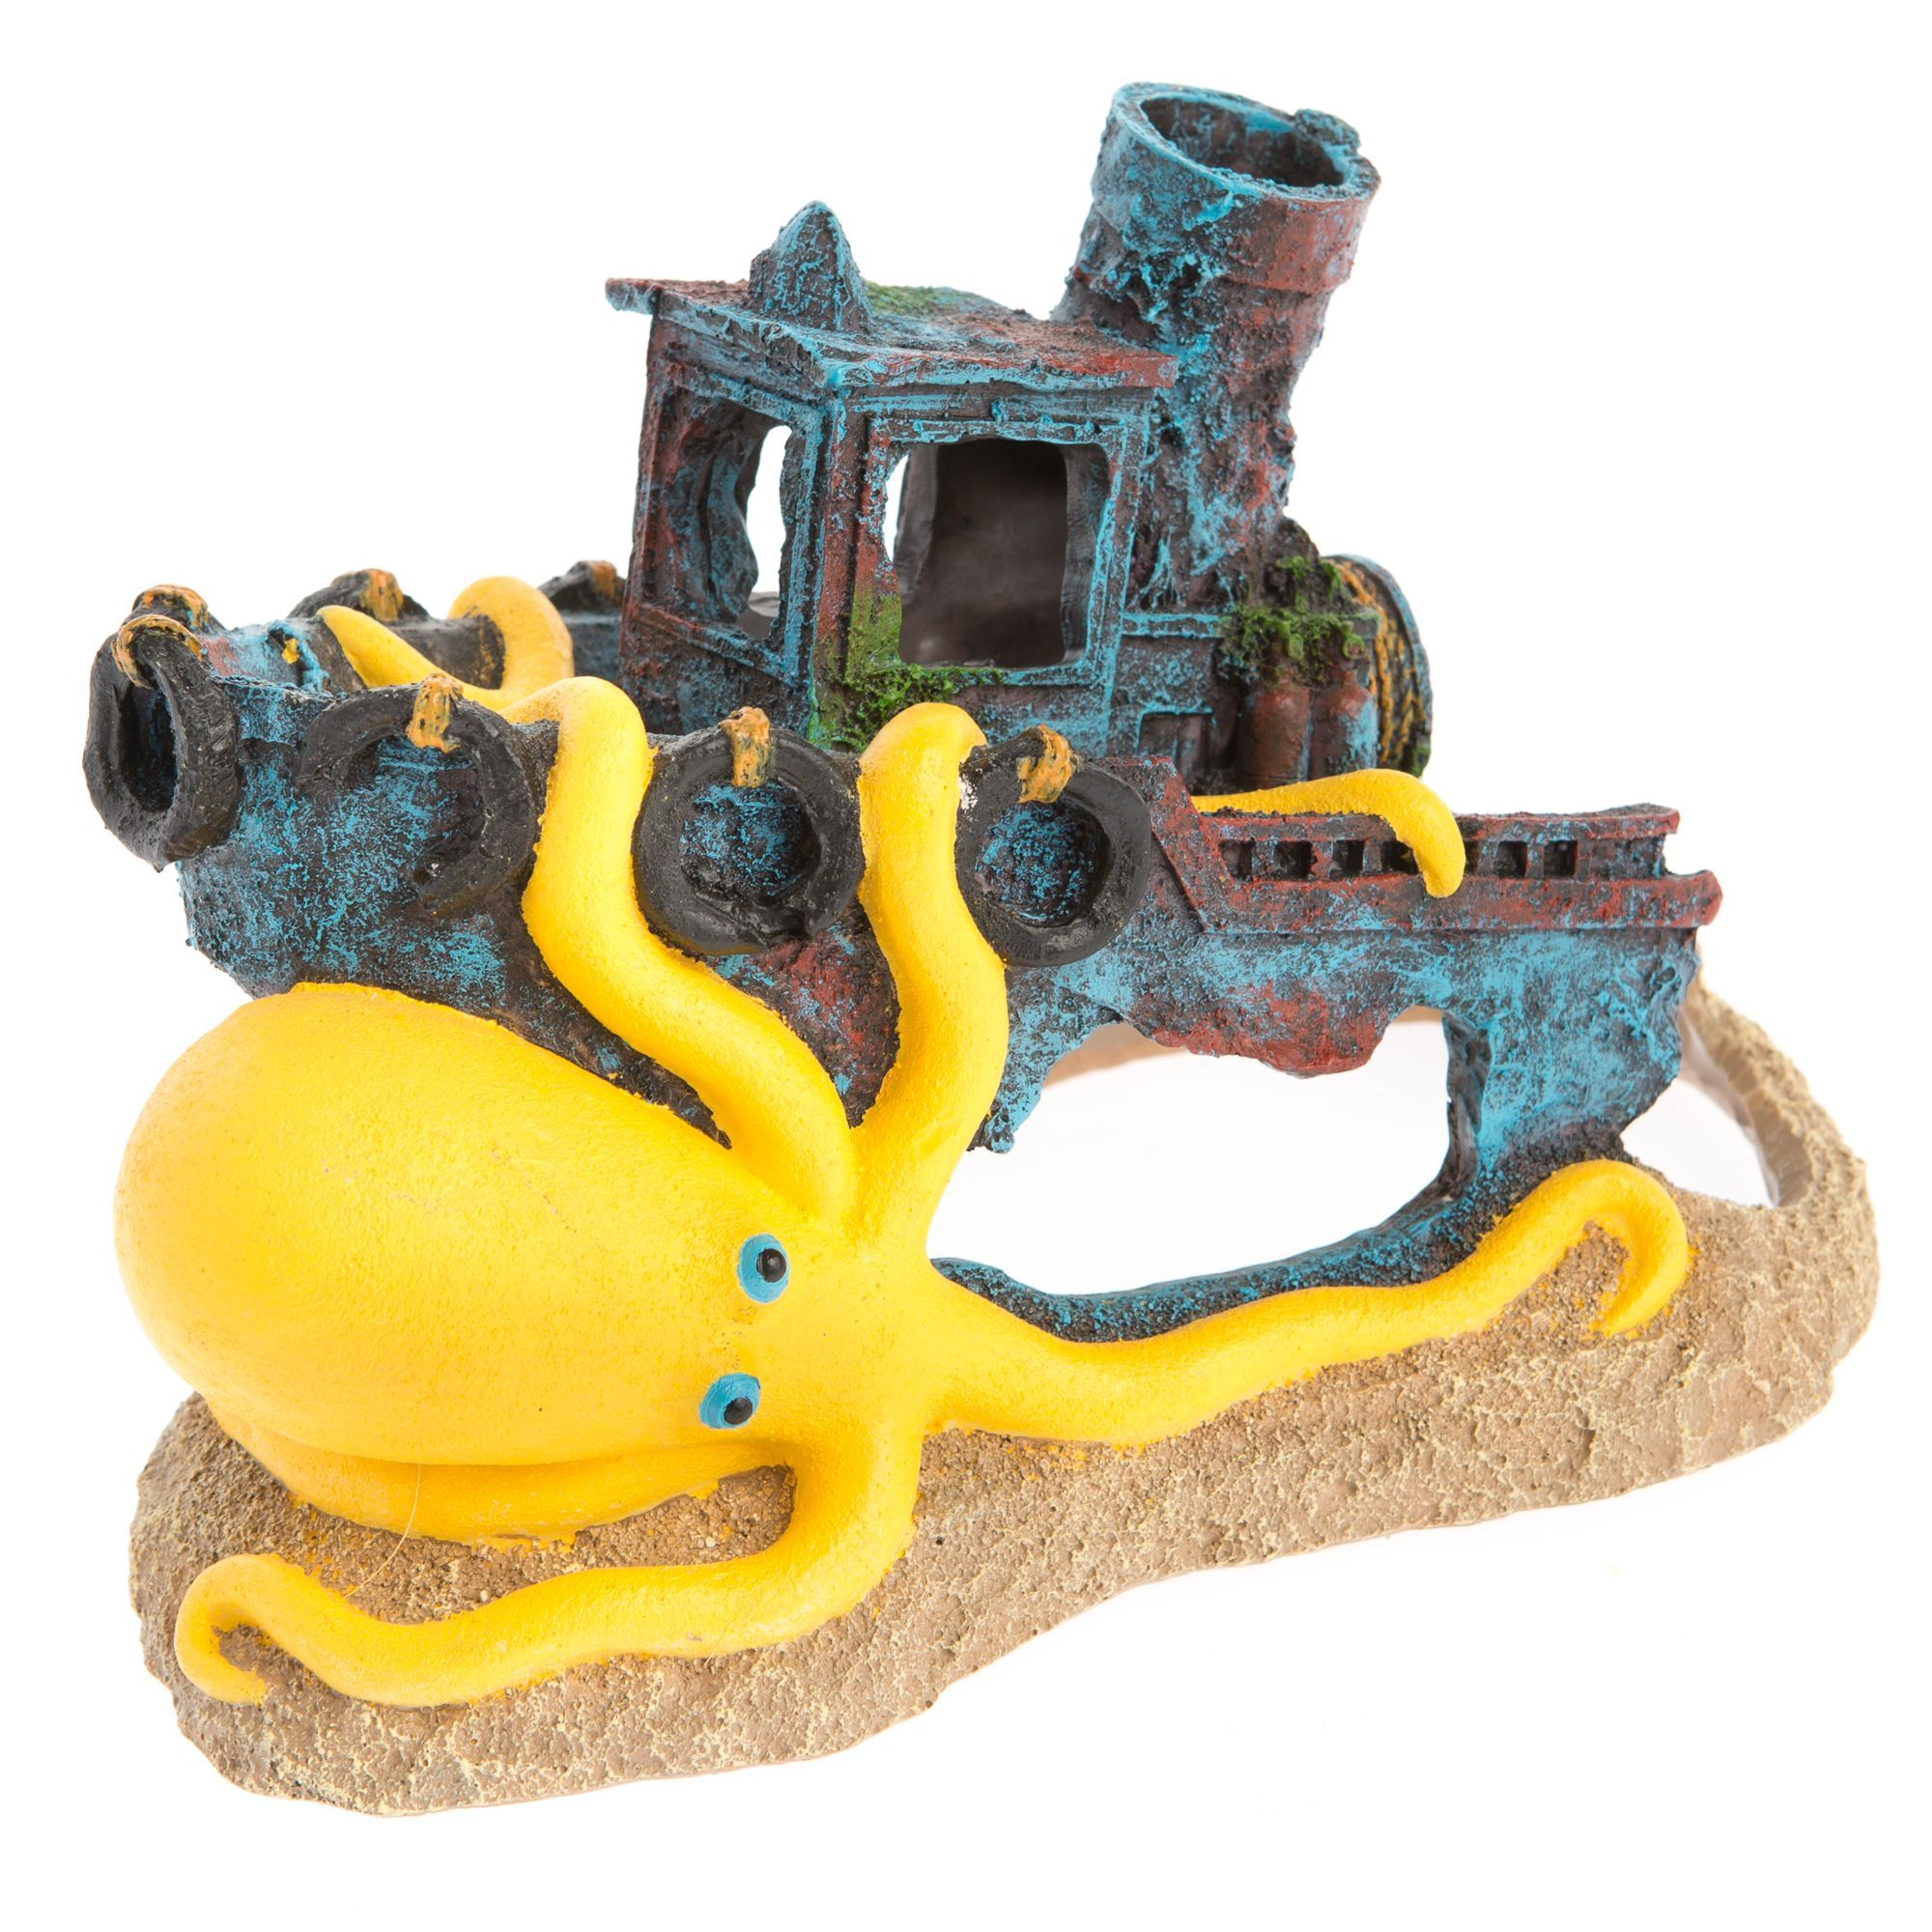 Top Fin Sunken Boat with Octopus Aquarium Ornament